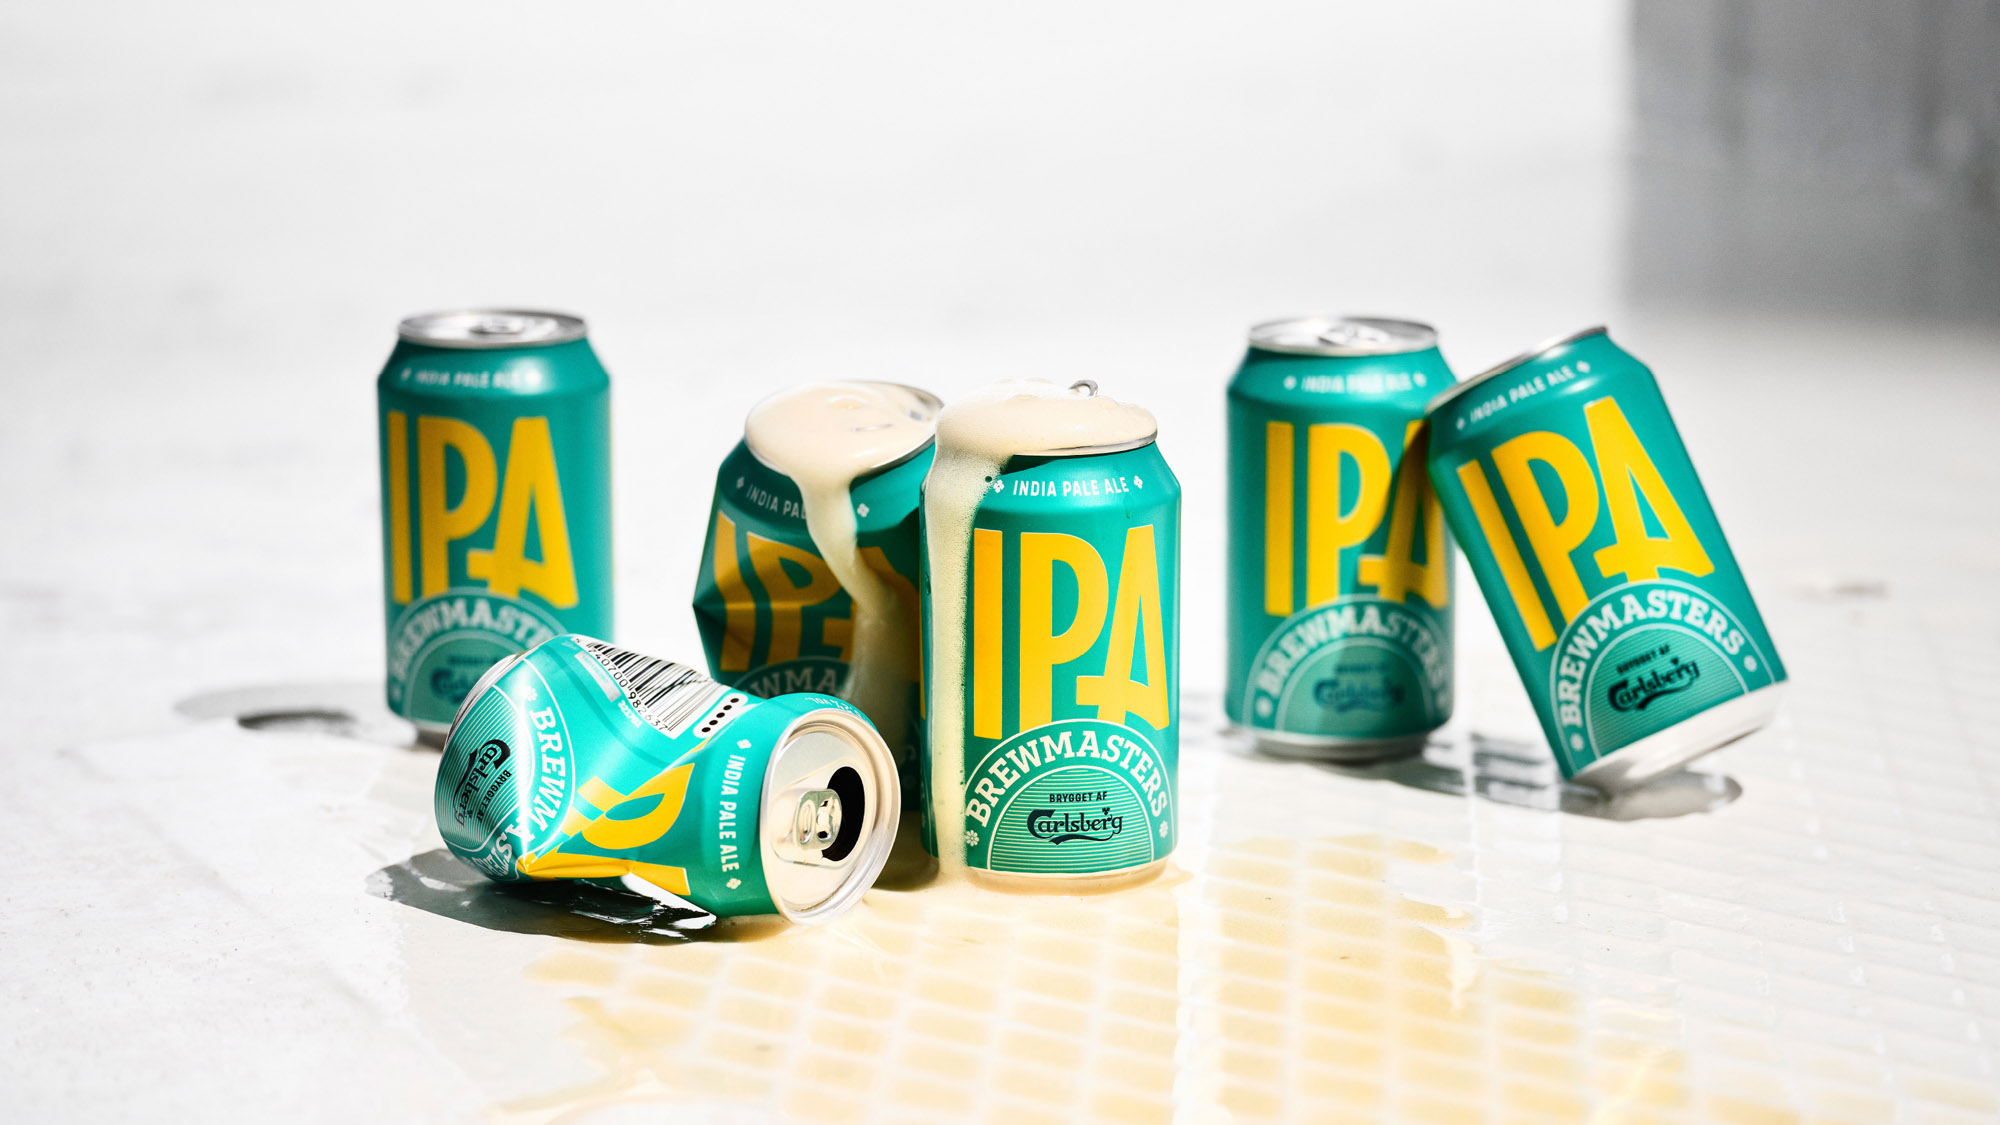 Everland Create New Brewmasters IPA Design From the Gates of Carlsberg